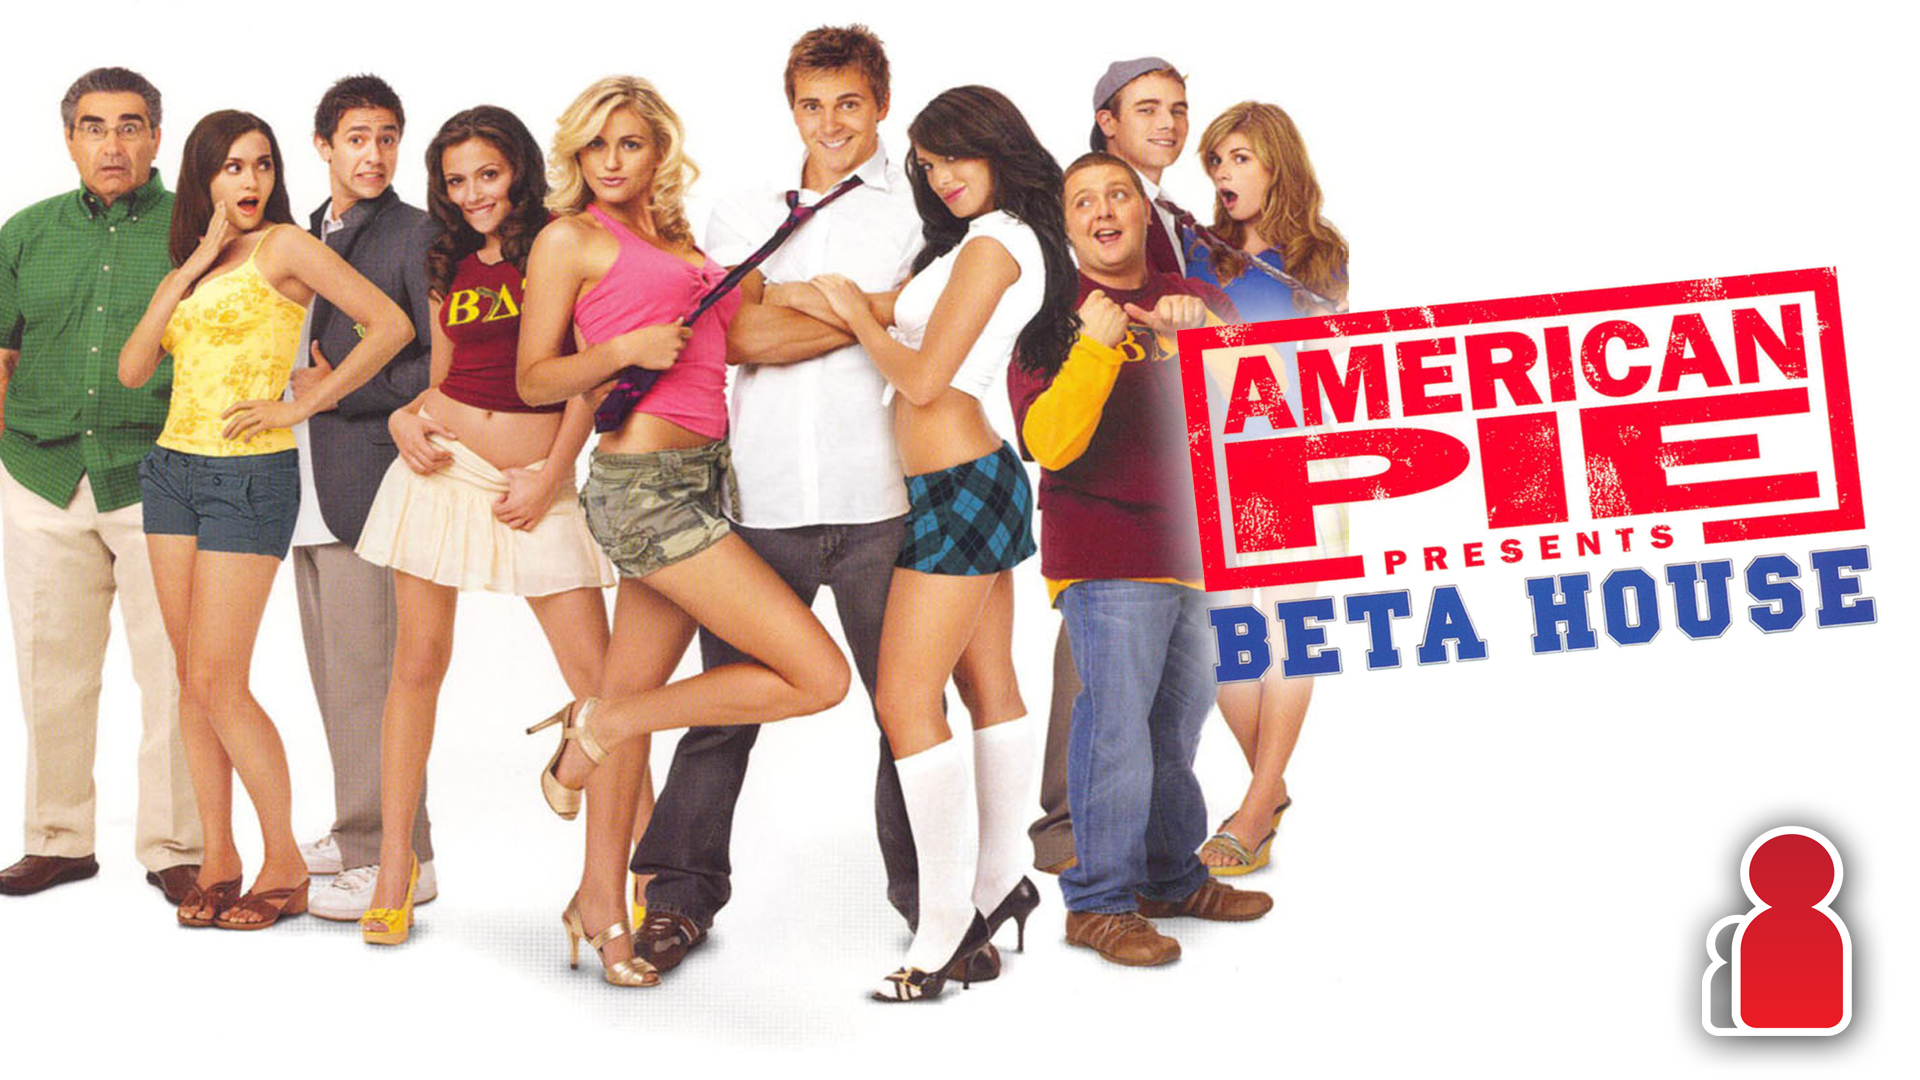 American Pie Presents Beta House Full Movie american pie presents beta house: the review | oracle of film